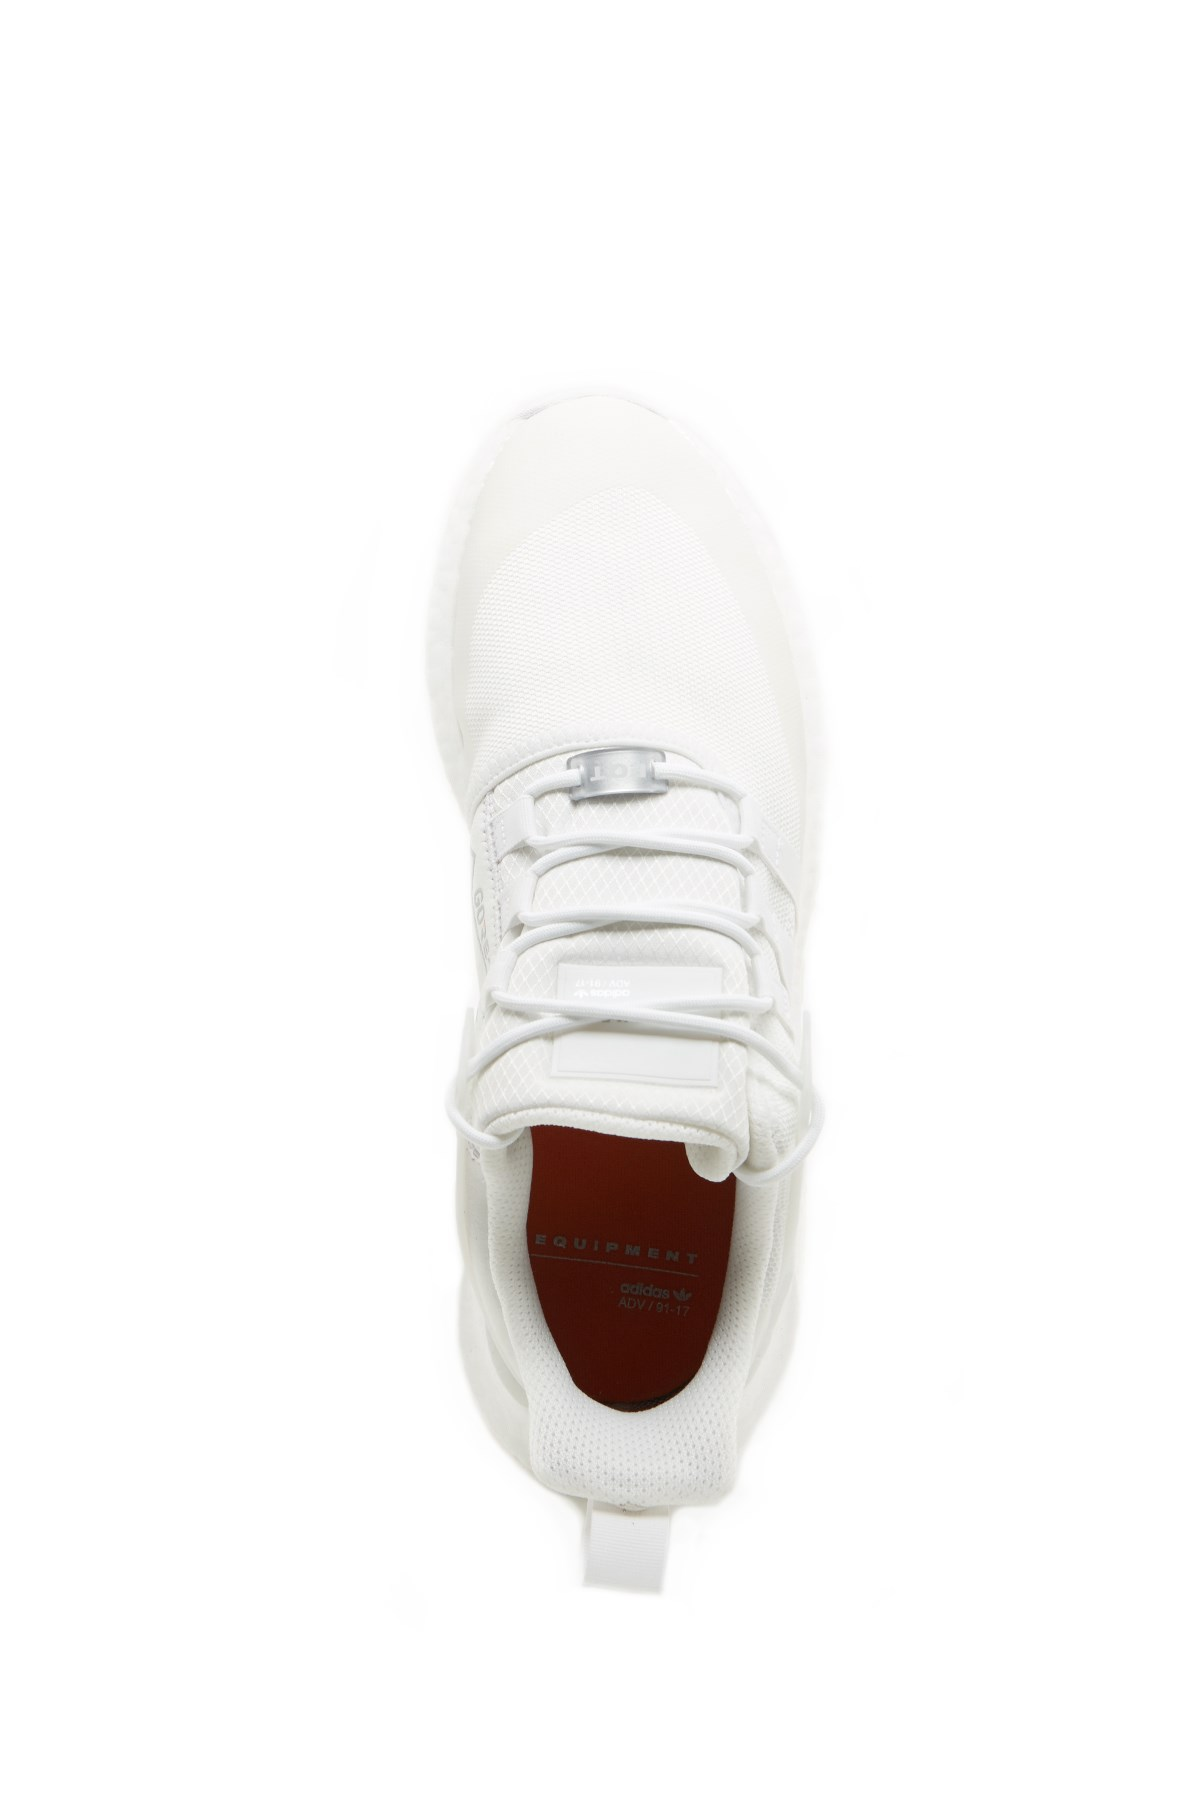 MENS ADIDAS ORGLS EQT SUPPORT 9317 BOOST #BY9509